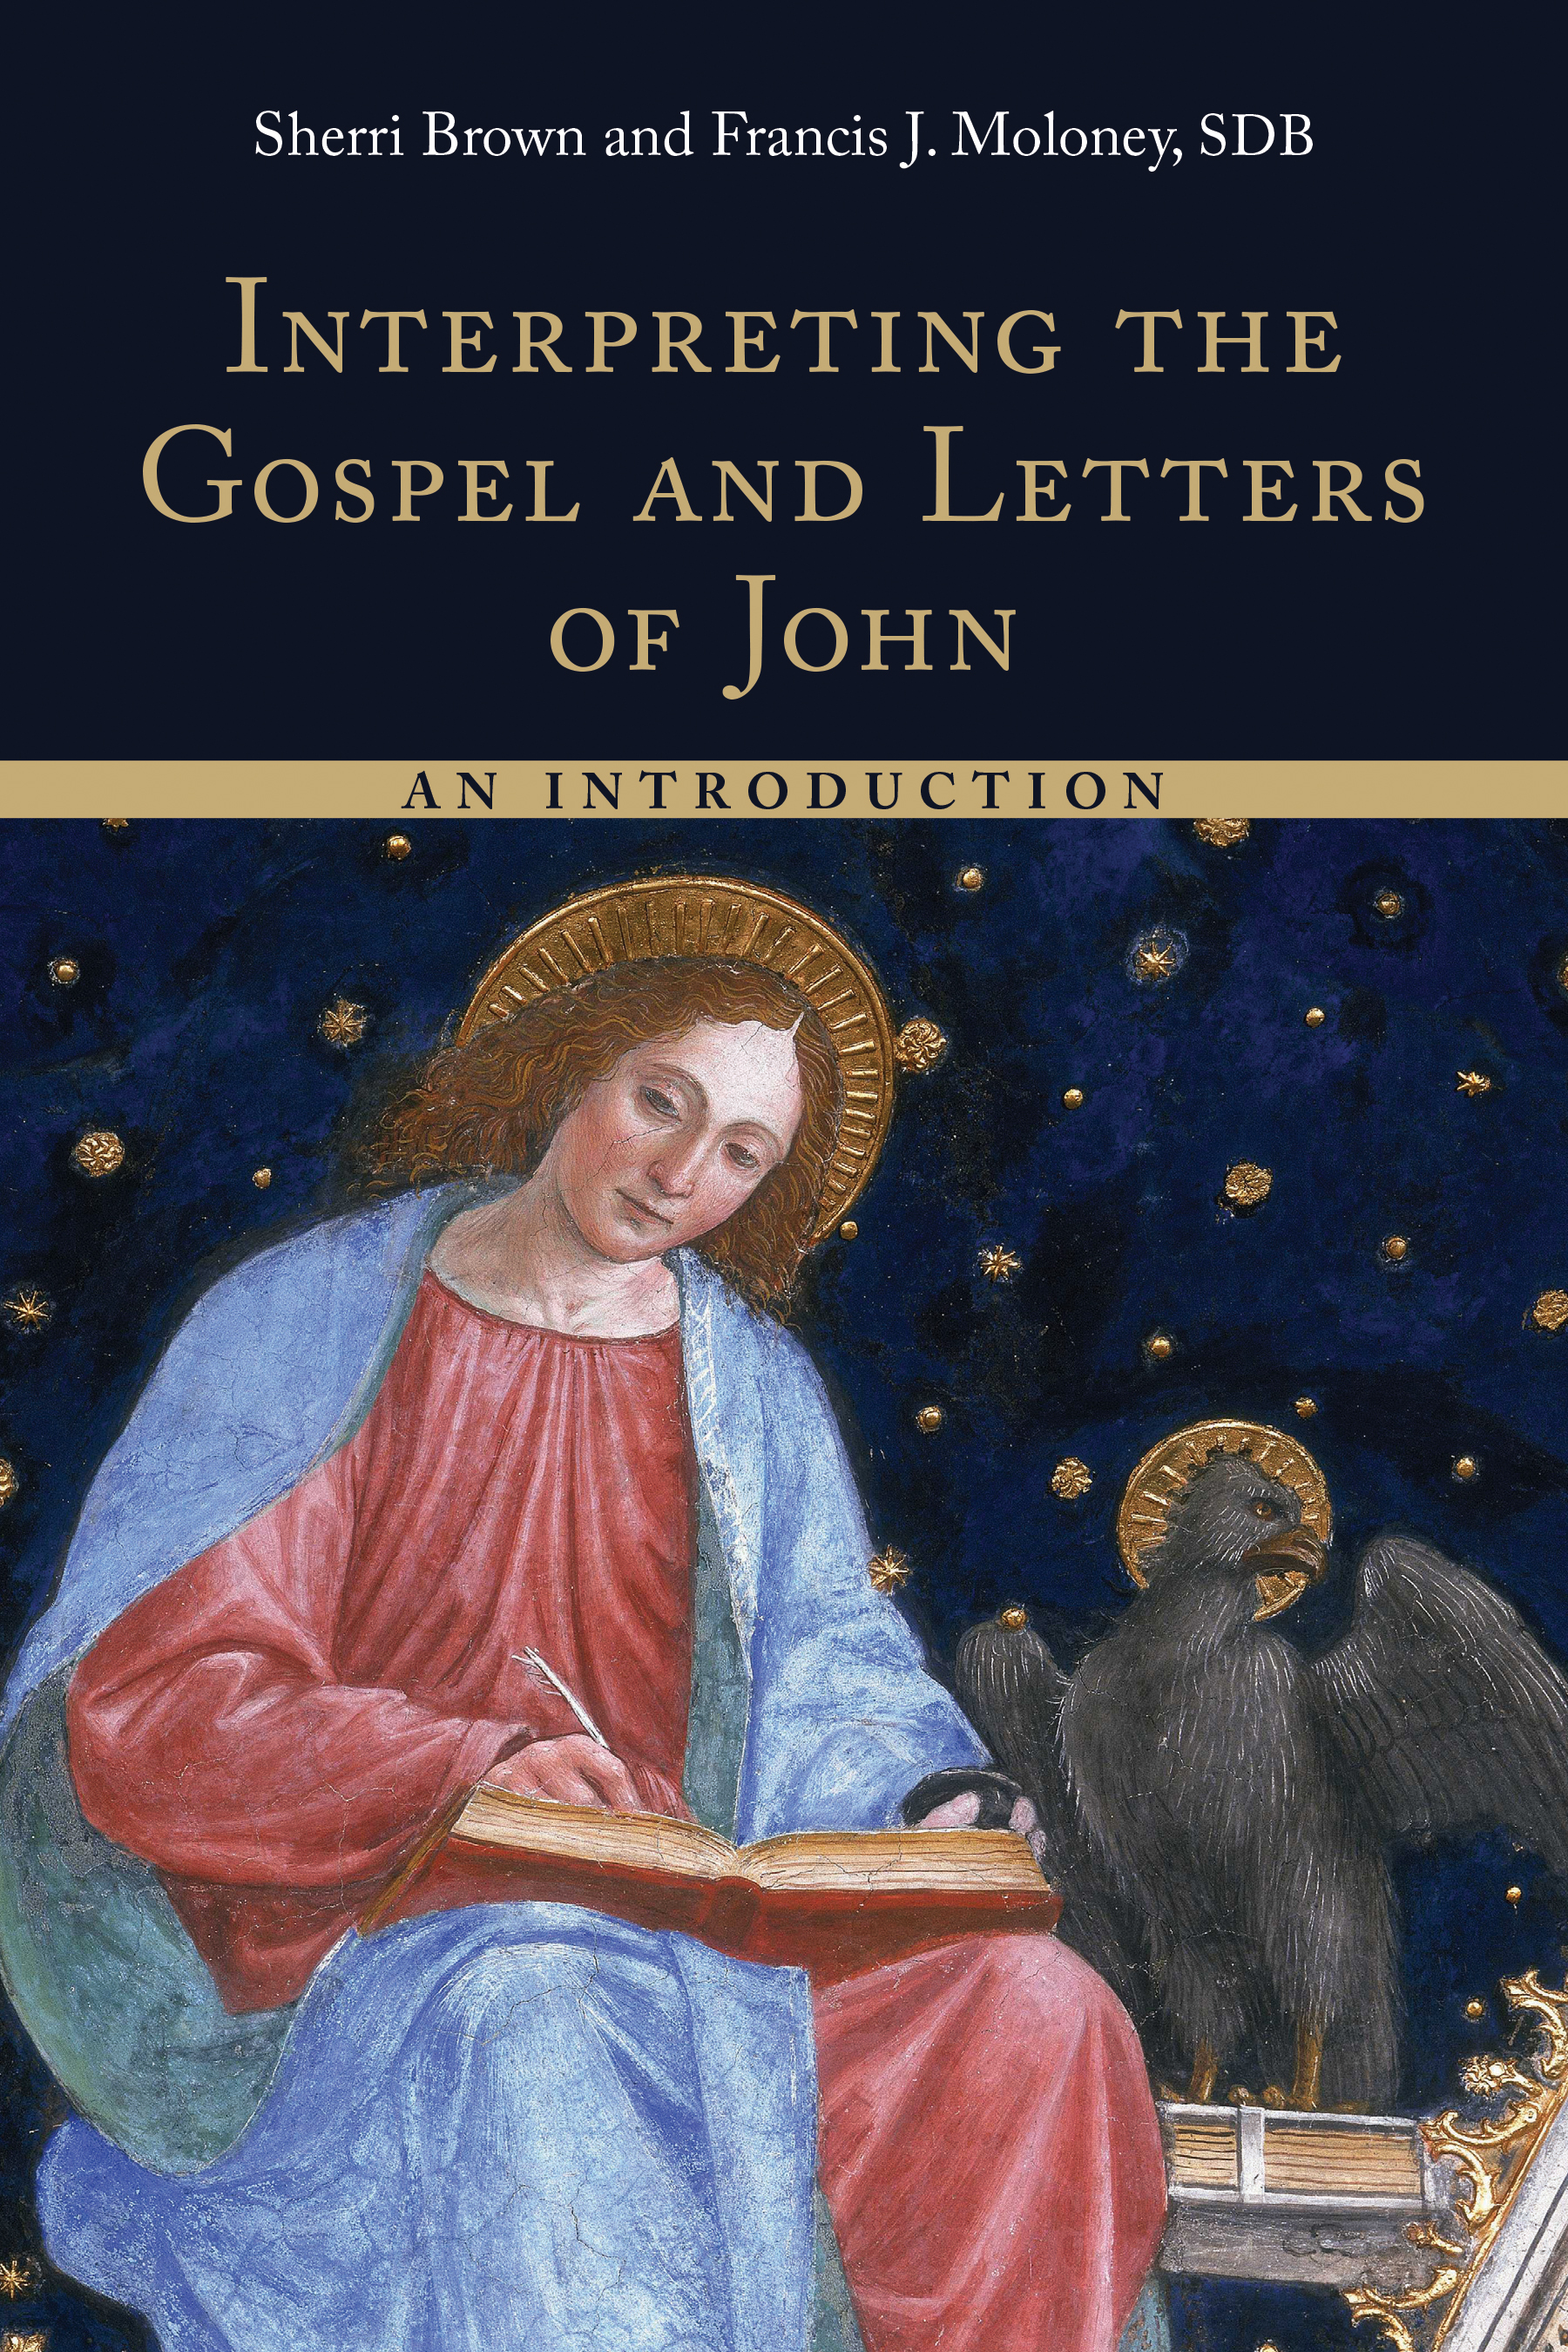 analysis of the gospel of john The gospel of john, or the fourth gospel, is narrower than the synoptic gospels (matthew, mark, and luke) in the compass of its themes, yet perhaps it penetrates more directly and deeply into the .